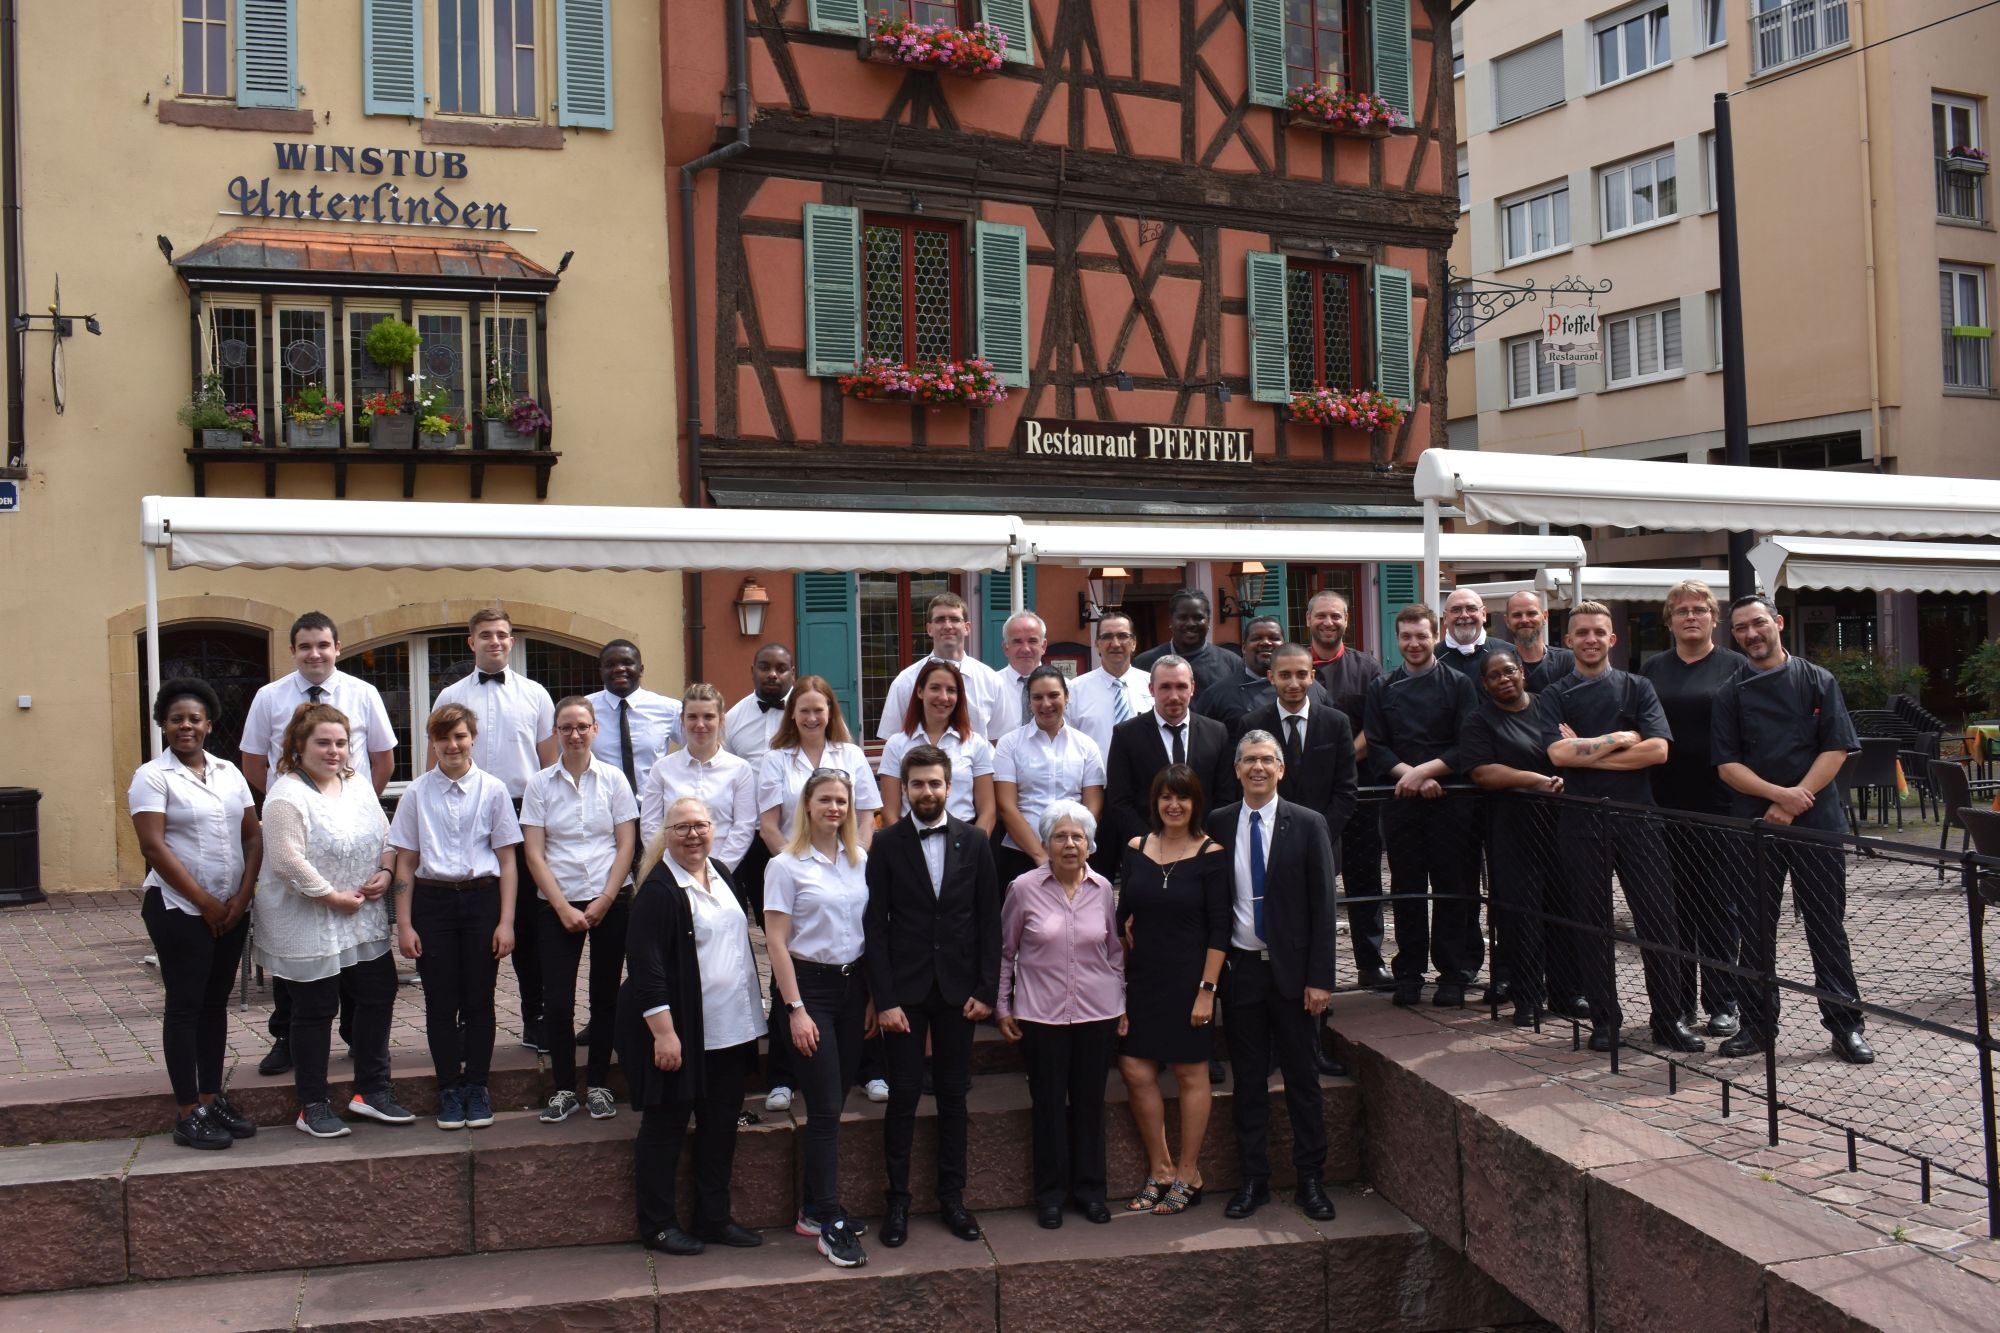 Office de tourisme de colmar en alsace brasserie unterlinden - Office de tourisme de colmar ...